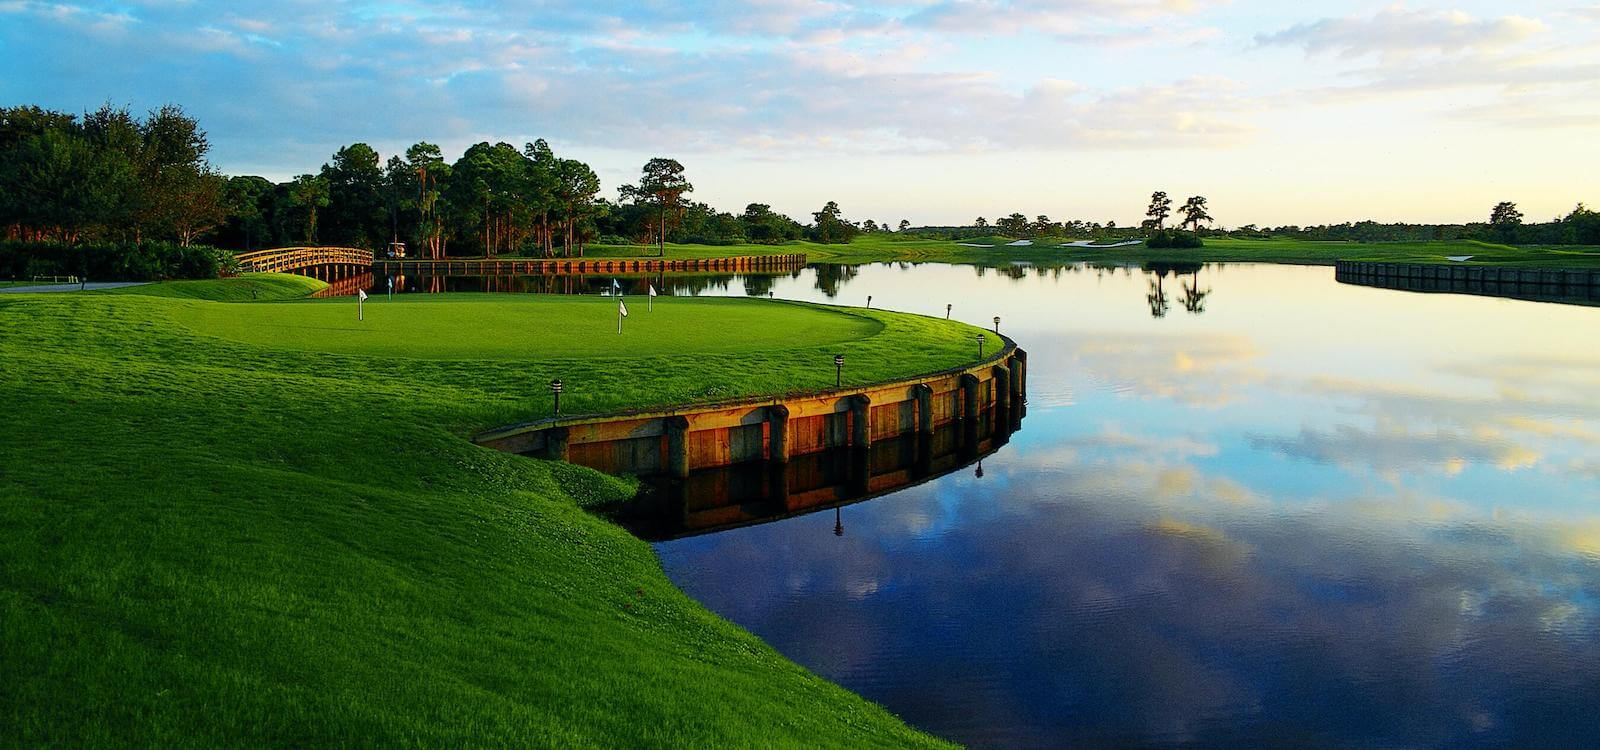 MustDo.com | The Sarasota, Florida area's best public golf courses include University Park Country Club.